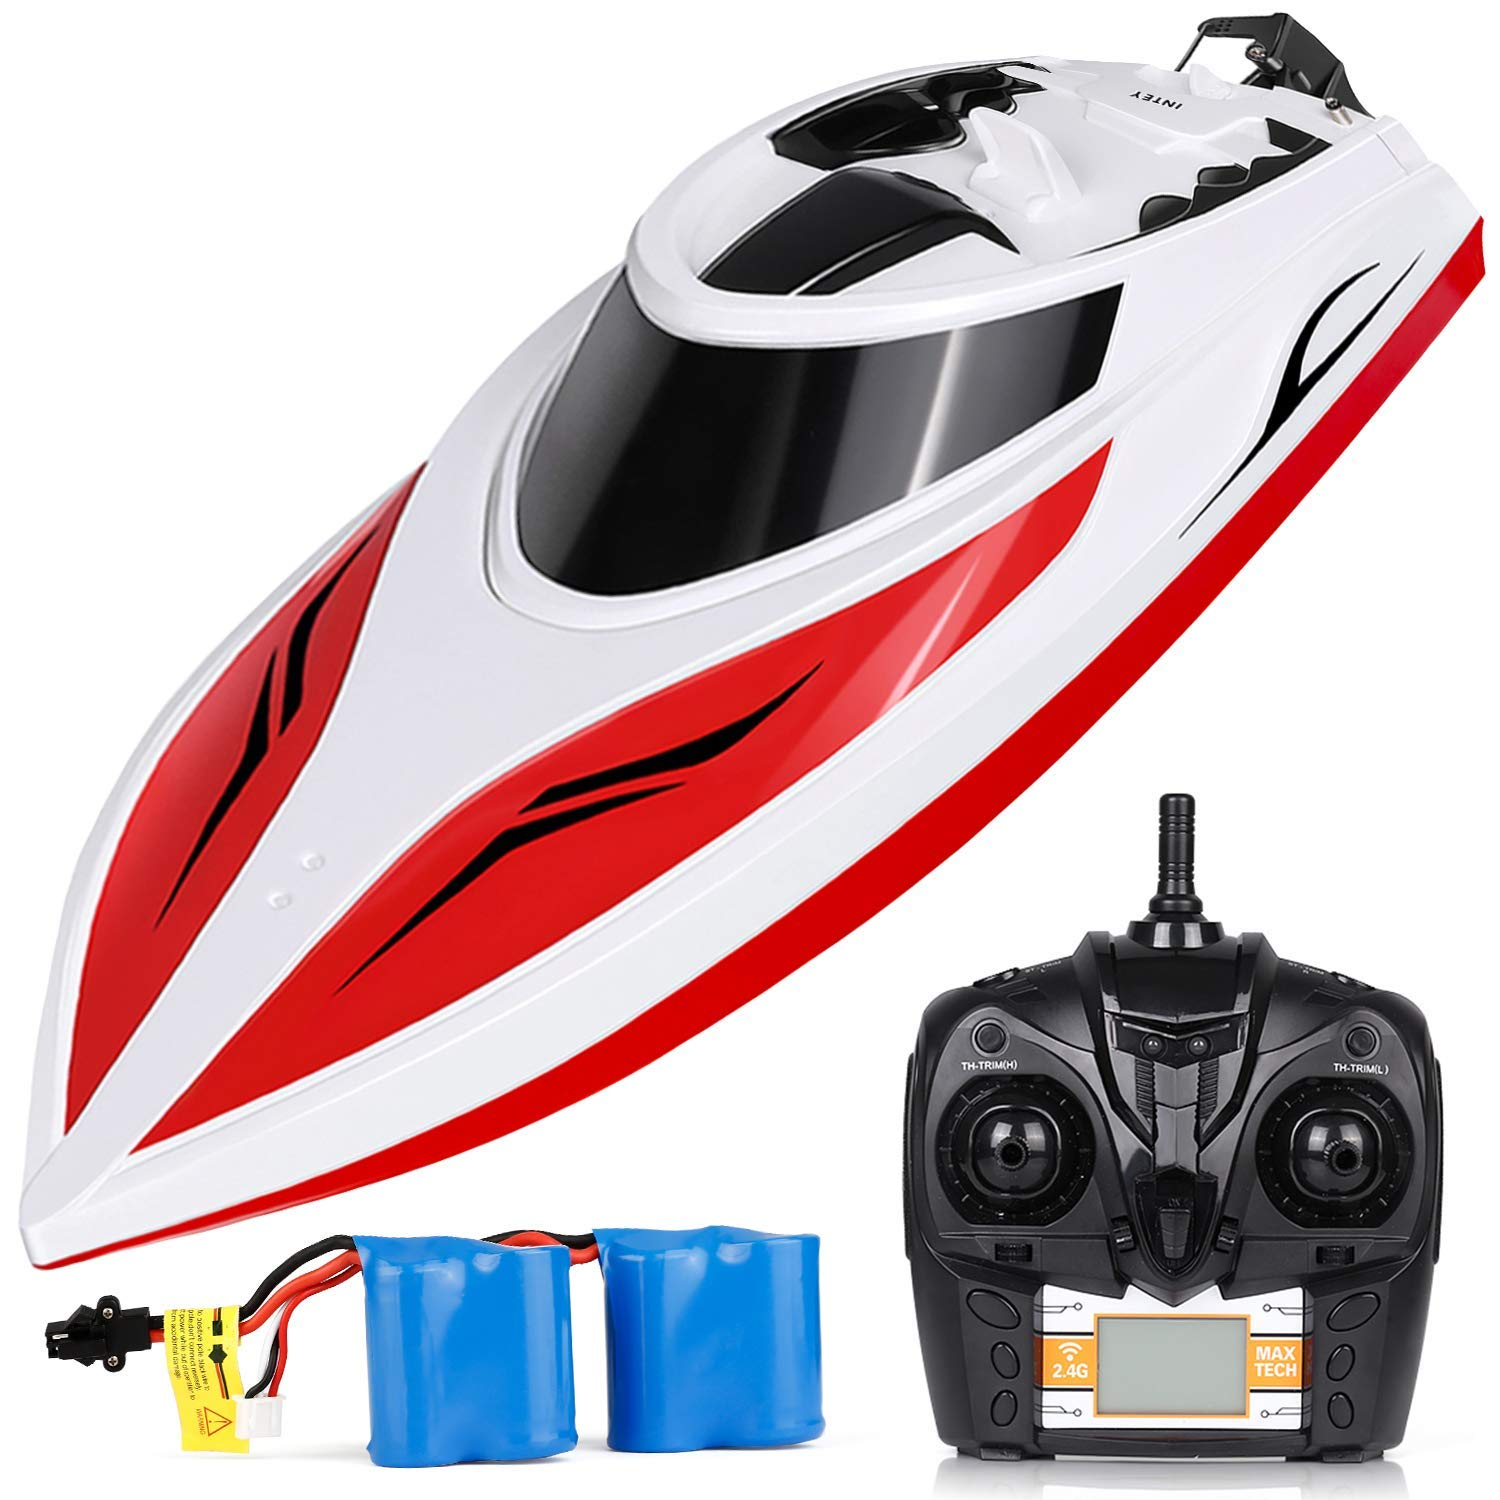 INTEY RC Boats for Kids & Adult - H102 20+ mph Remote Controlled RC Boat for Pool & Lakes, Speed Boat with 4 Channel & Capsize Recovery, a Must for Outdoor Adventure, Red by INTEY